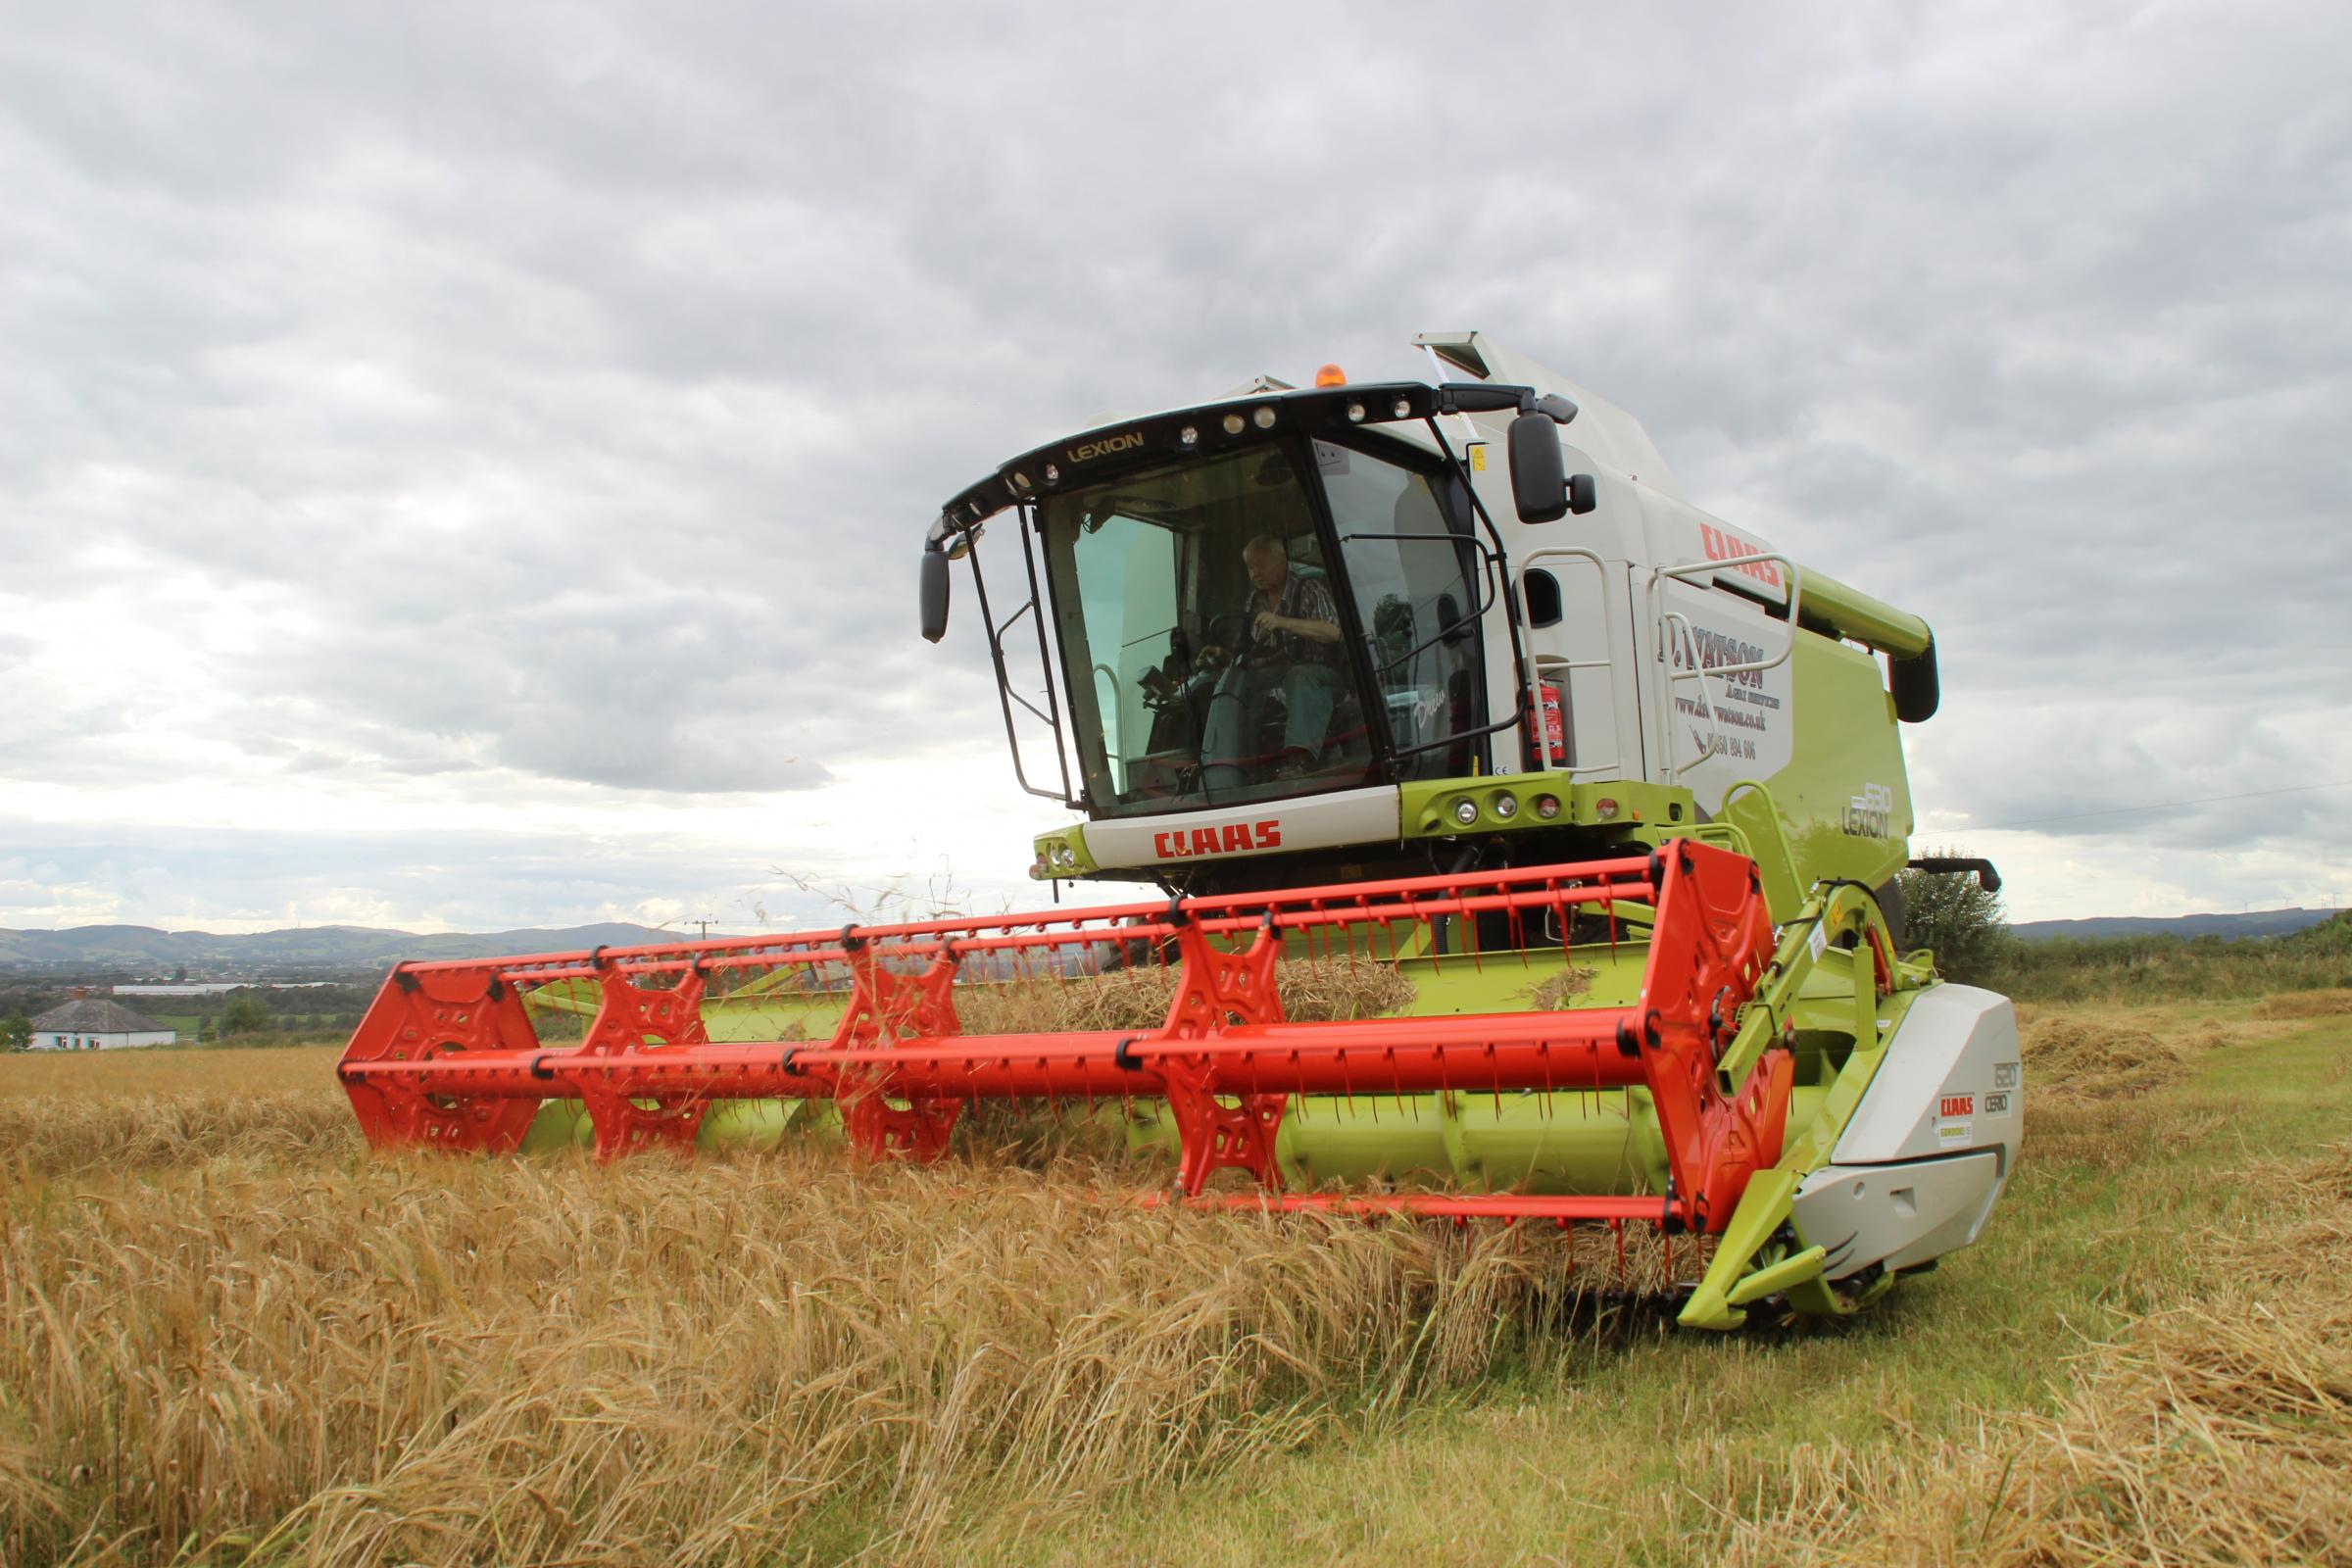 Combining is underway, but in a stop:start fashion